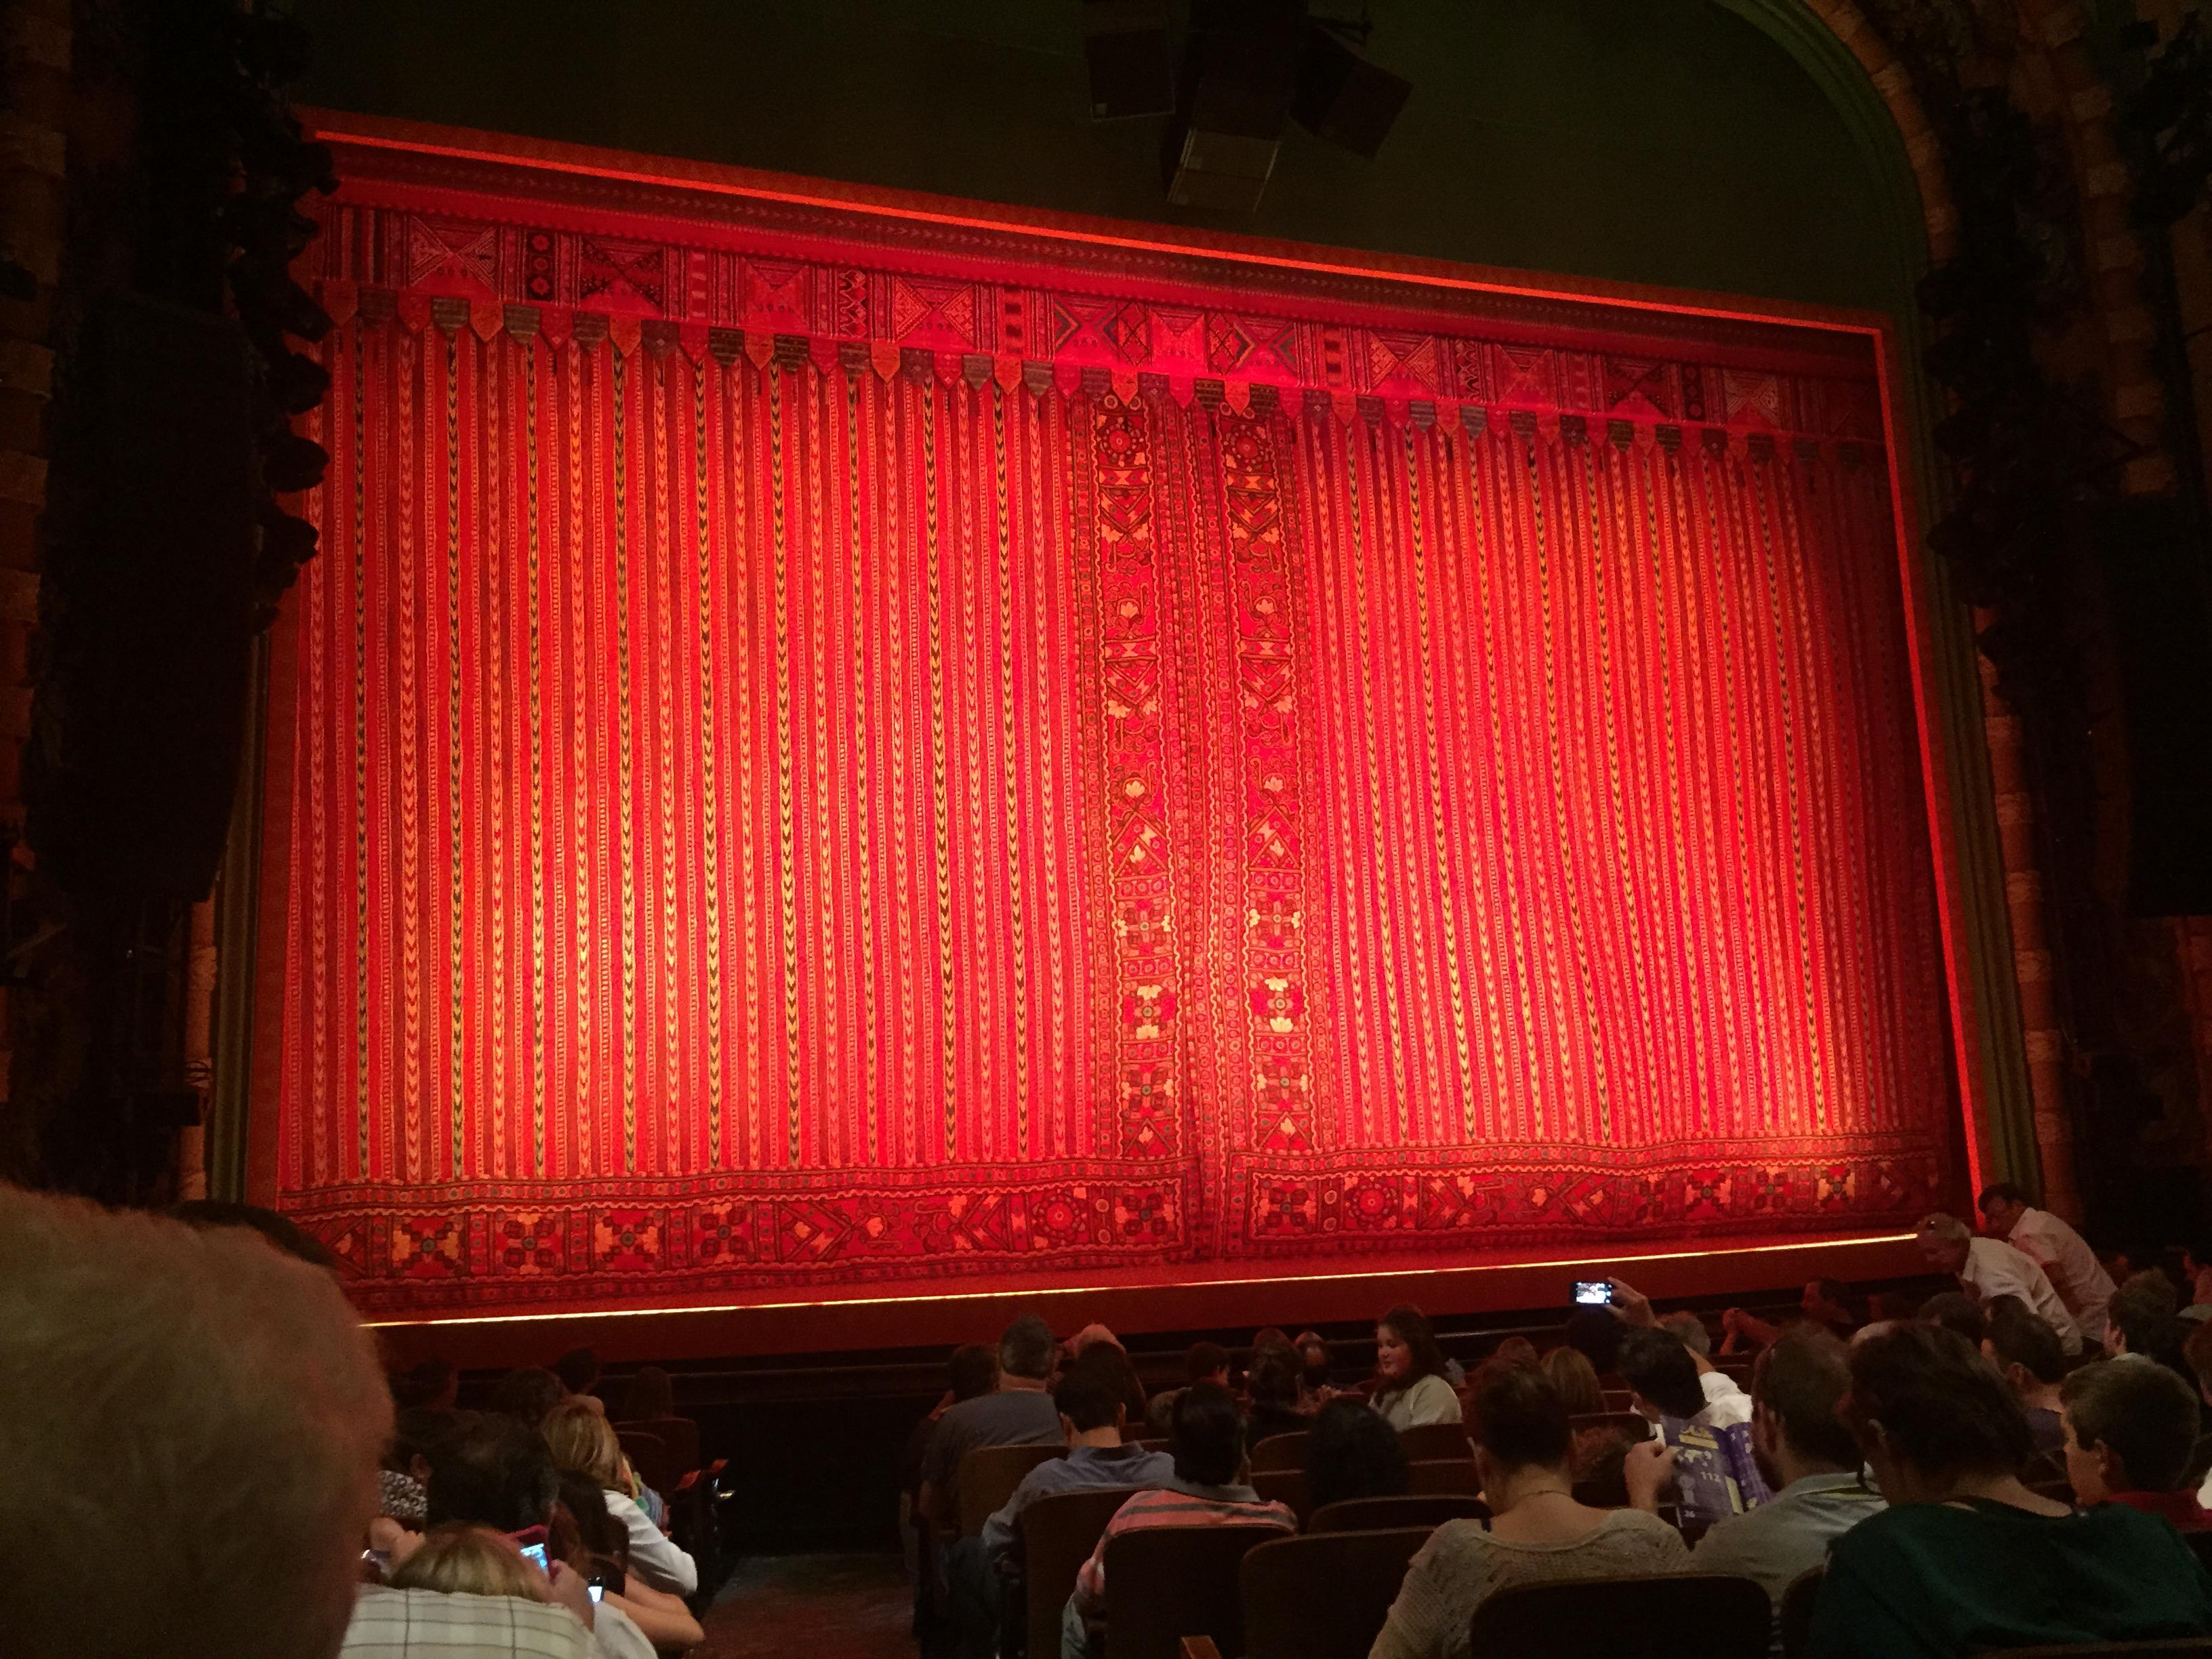 New Amsterdam Theatre Section Orchestra L Row M Seat 1